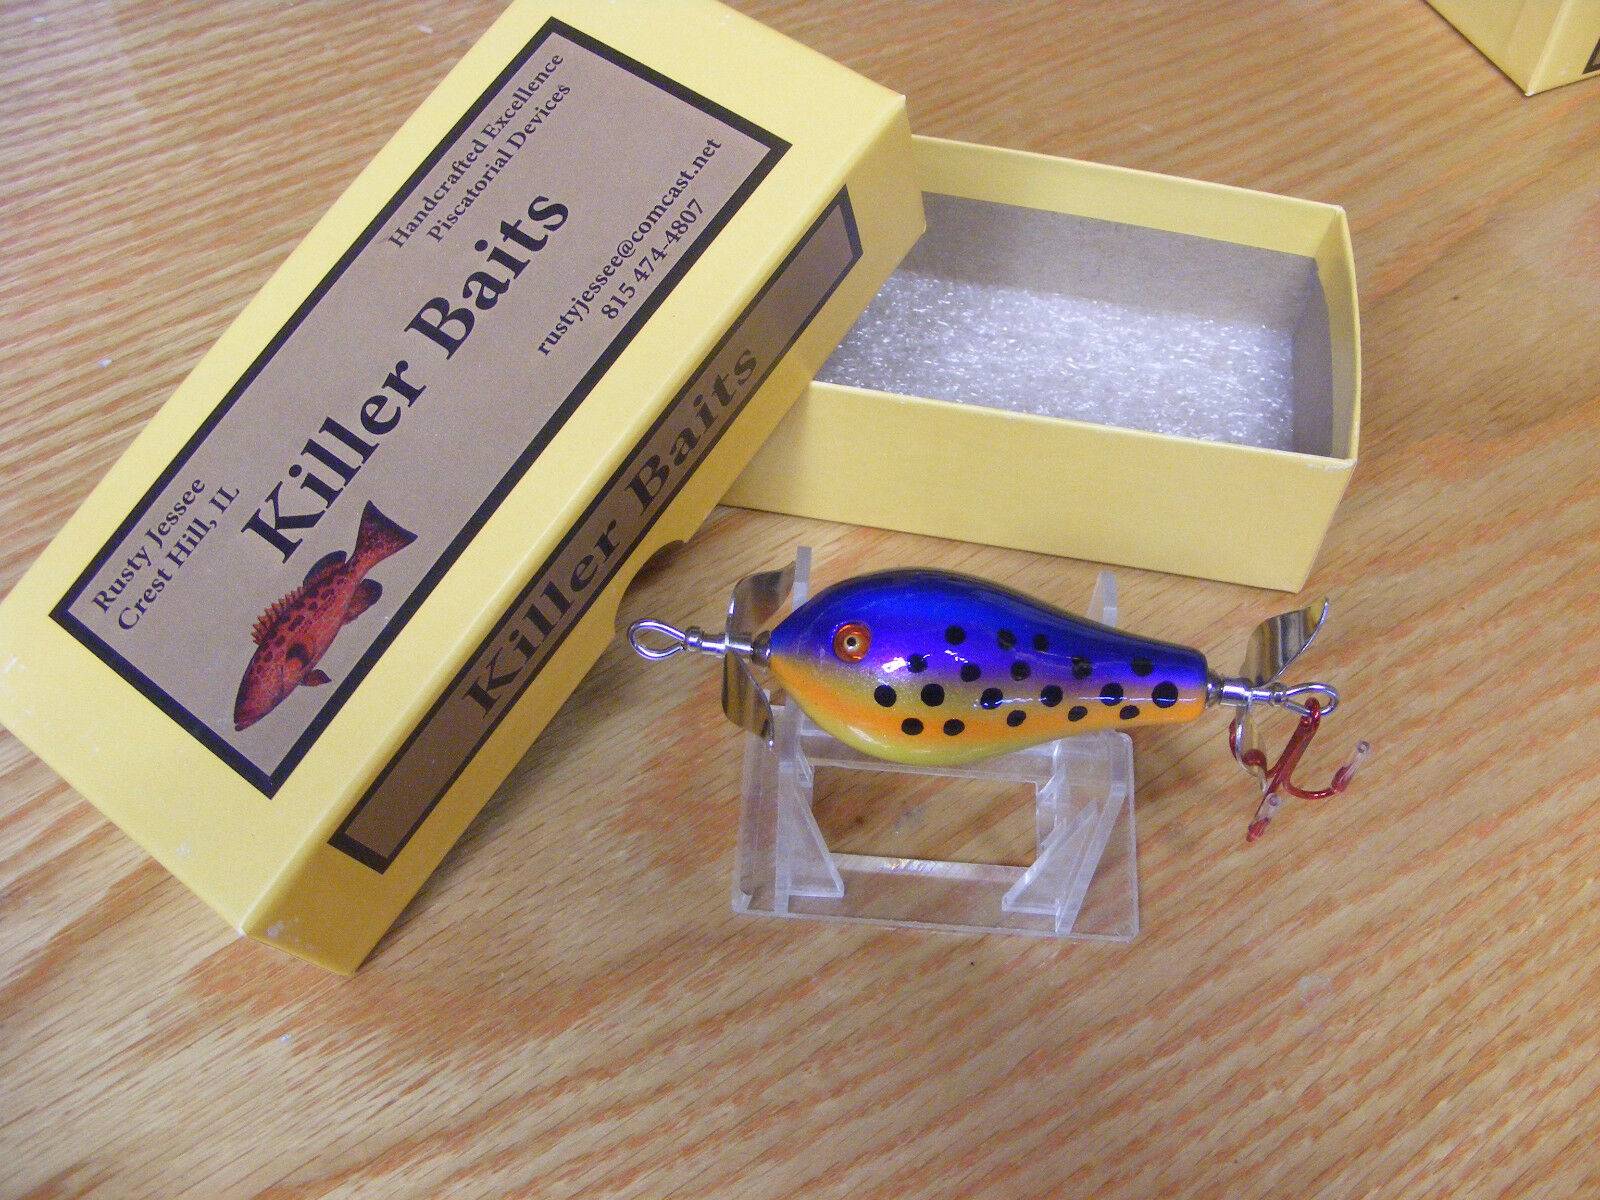 Beautiful Killer Baits Rusty Jessee Glasseye Fatso Lure in Tropical Berry color